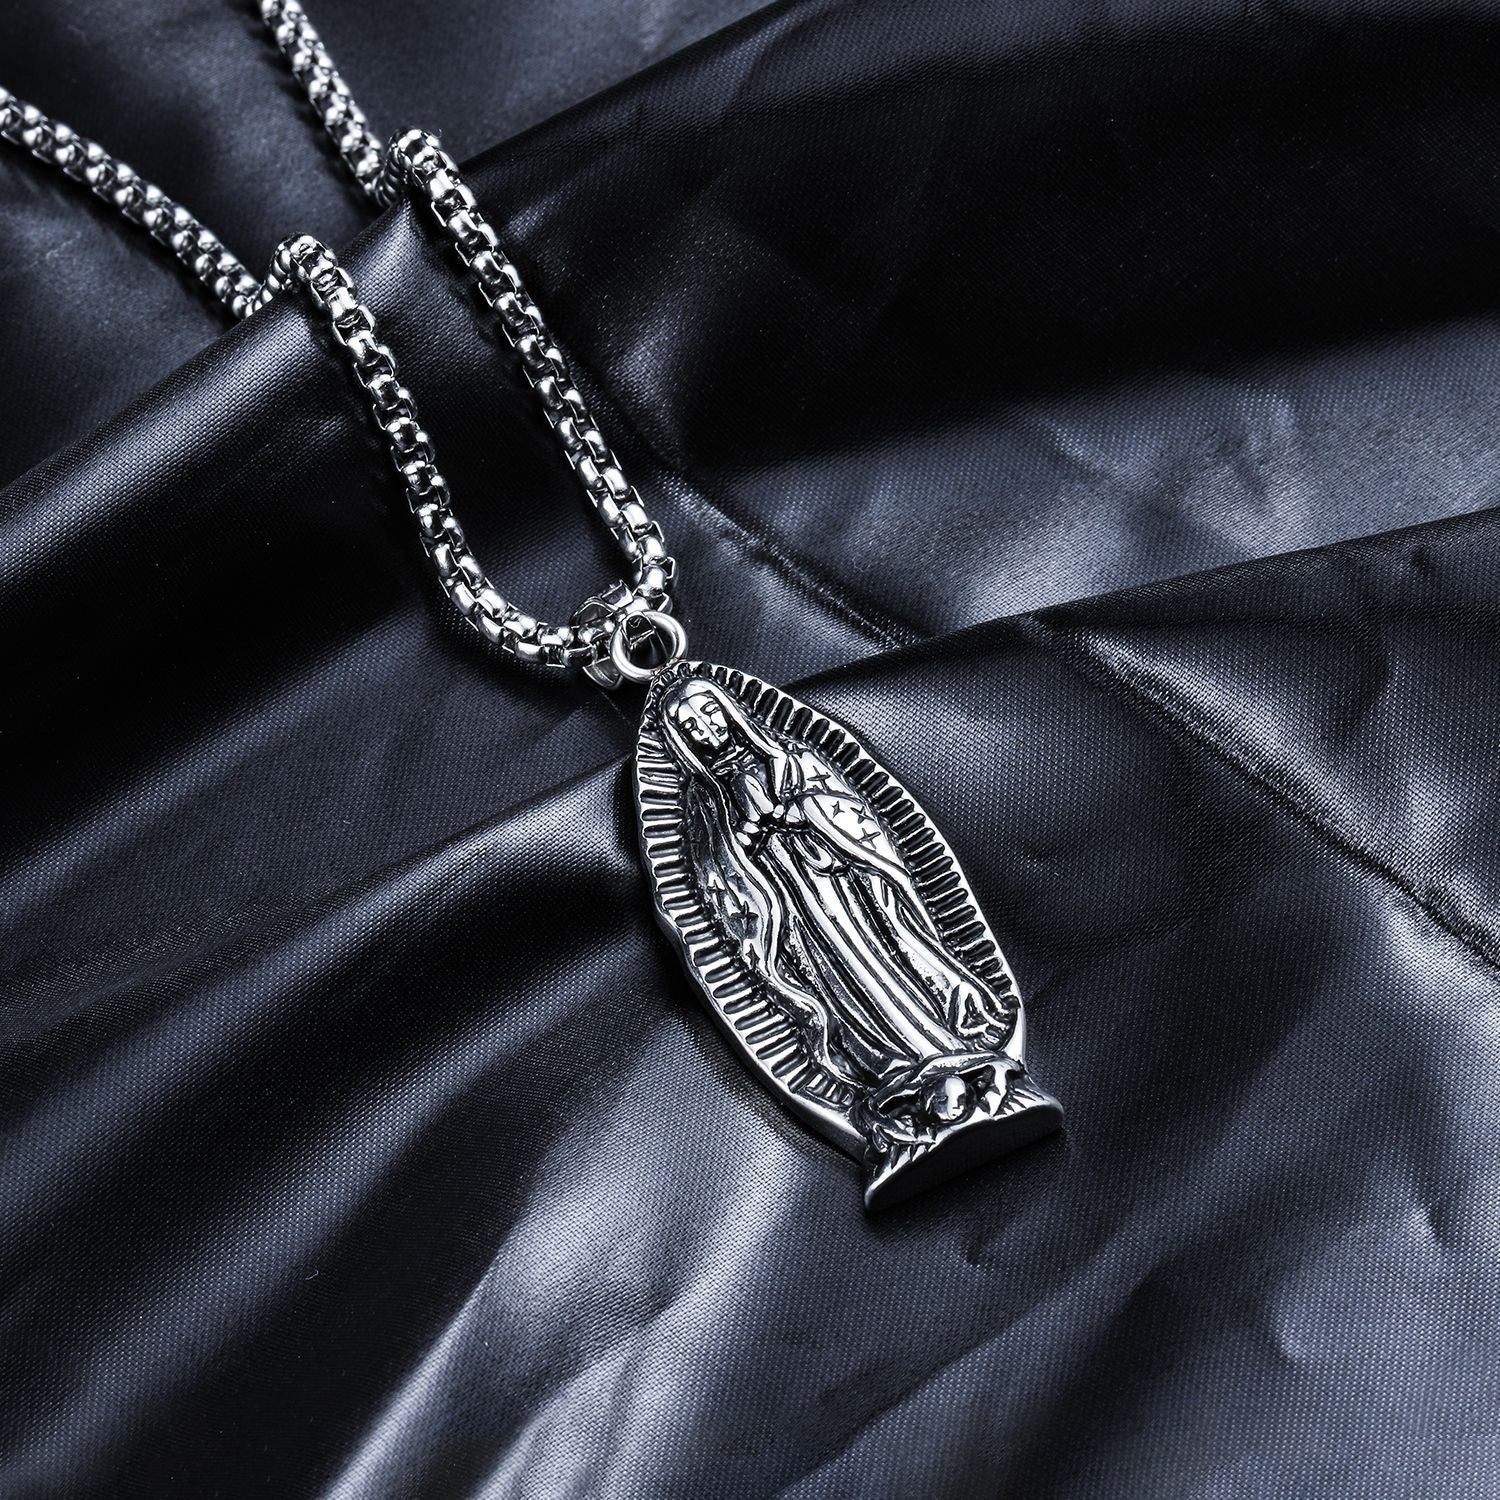 Pray For Me Mother Mary Pendant Designer Necklace -White Gold Filled